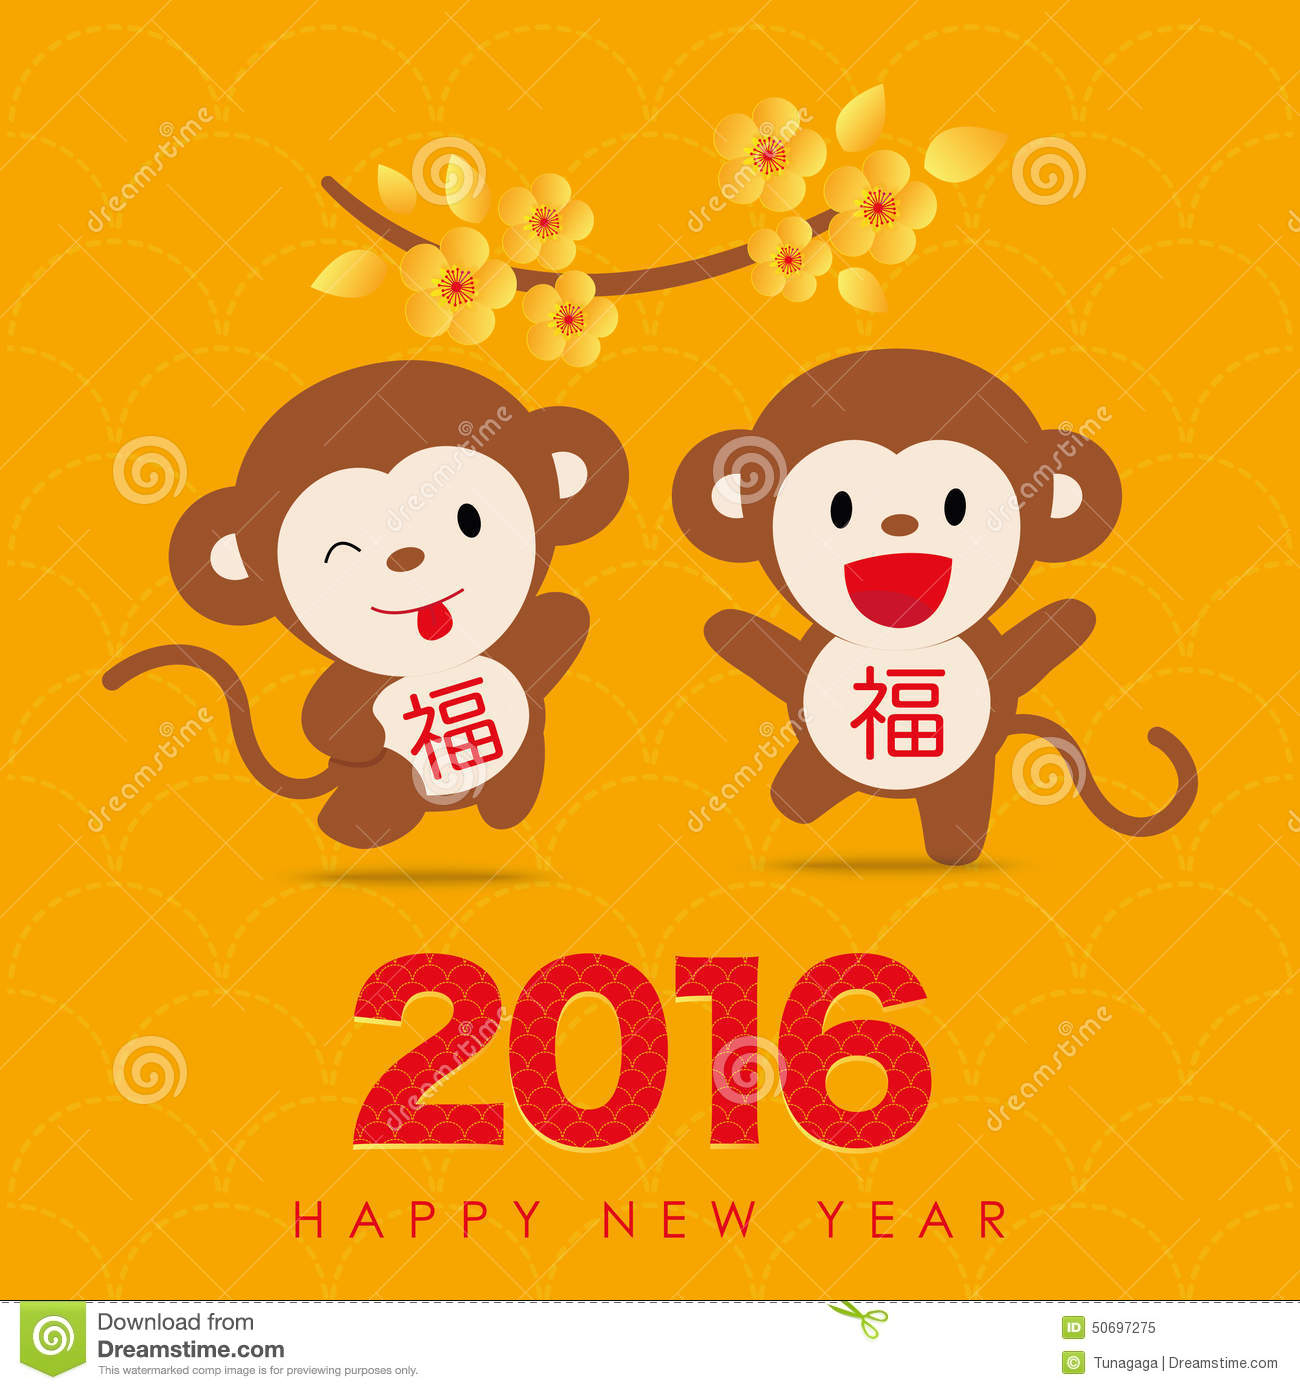 2016 Monkey Chinese New Year - Greeting card design